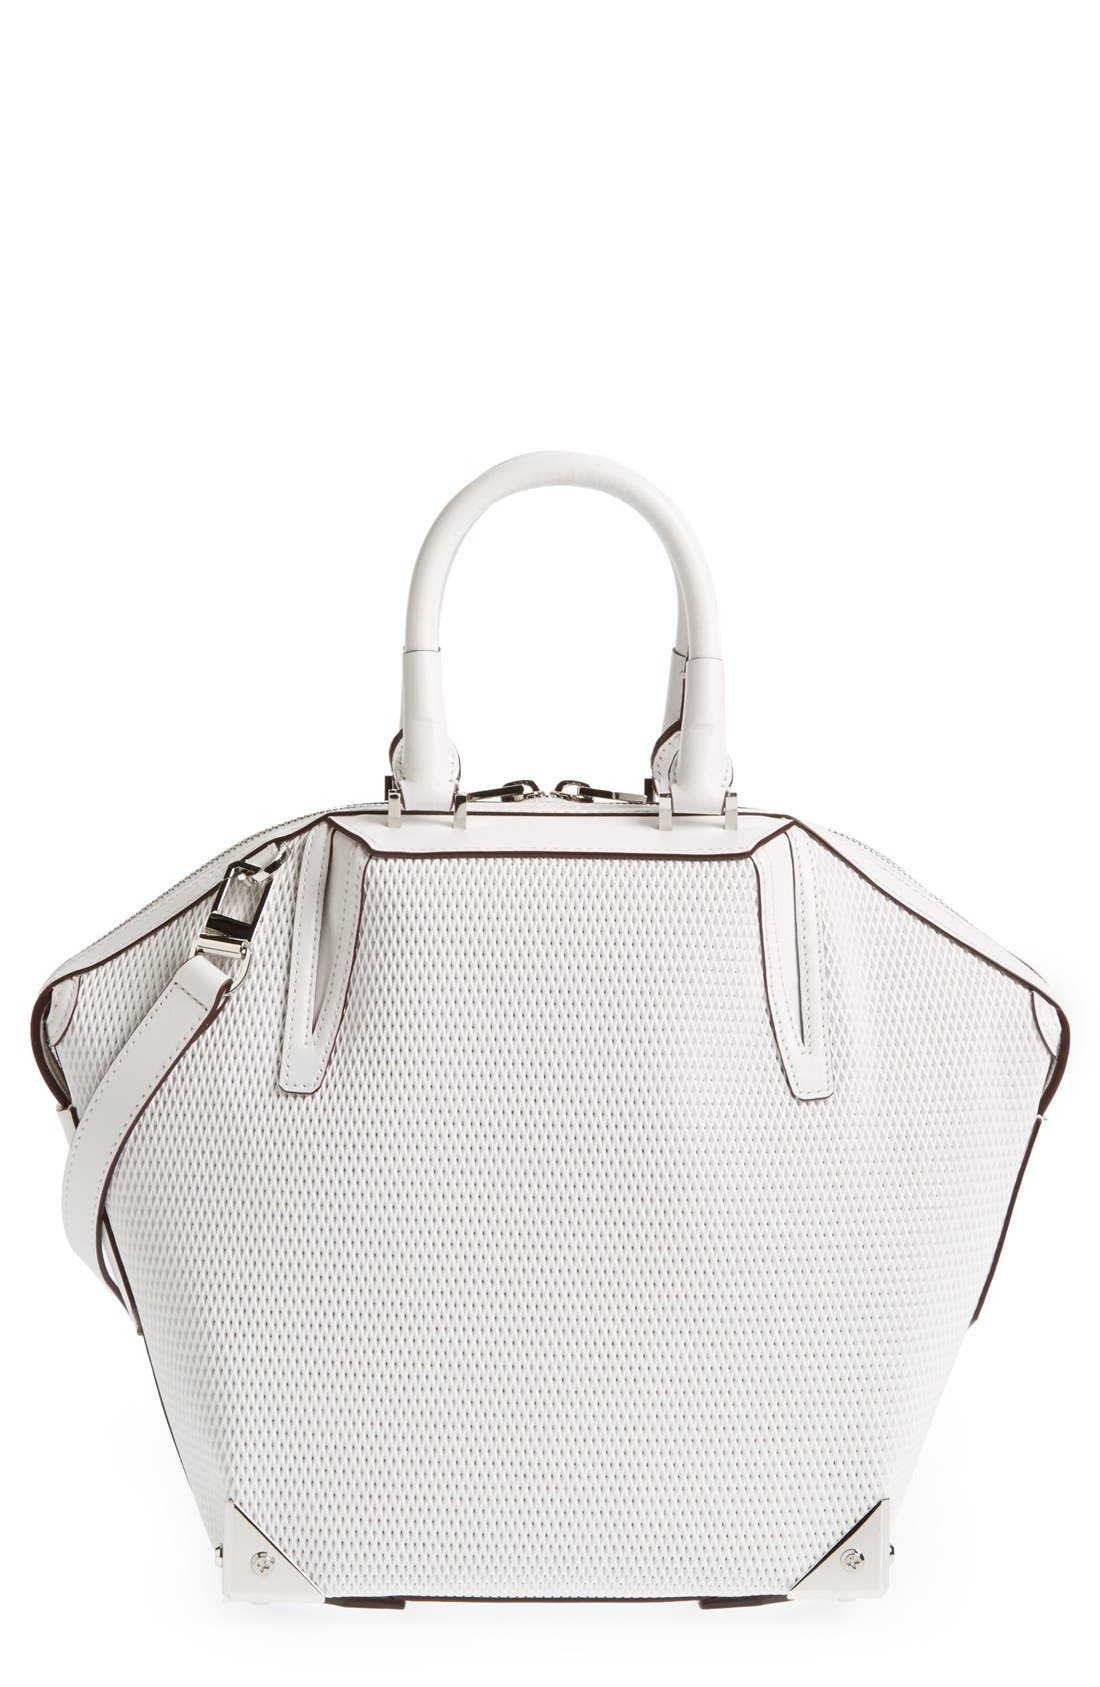 Alternate Image 1 Selected - Alexander Wang 'Small Emile' Leather Satchel